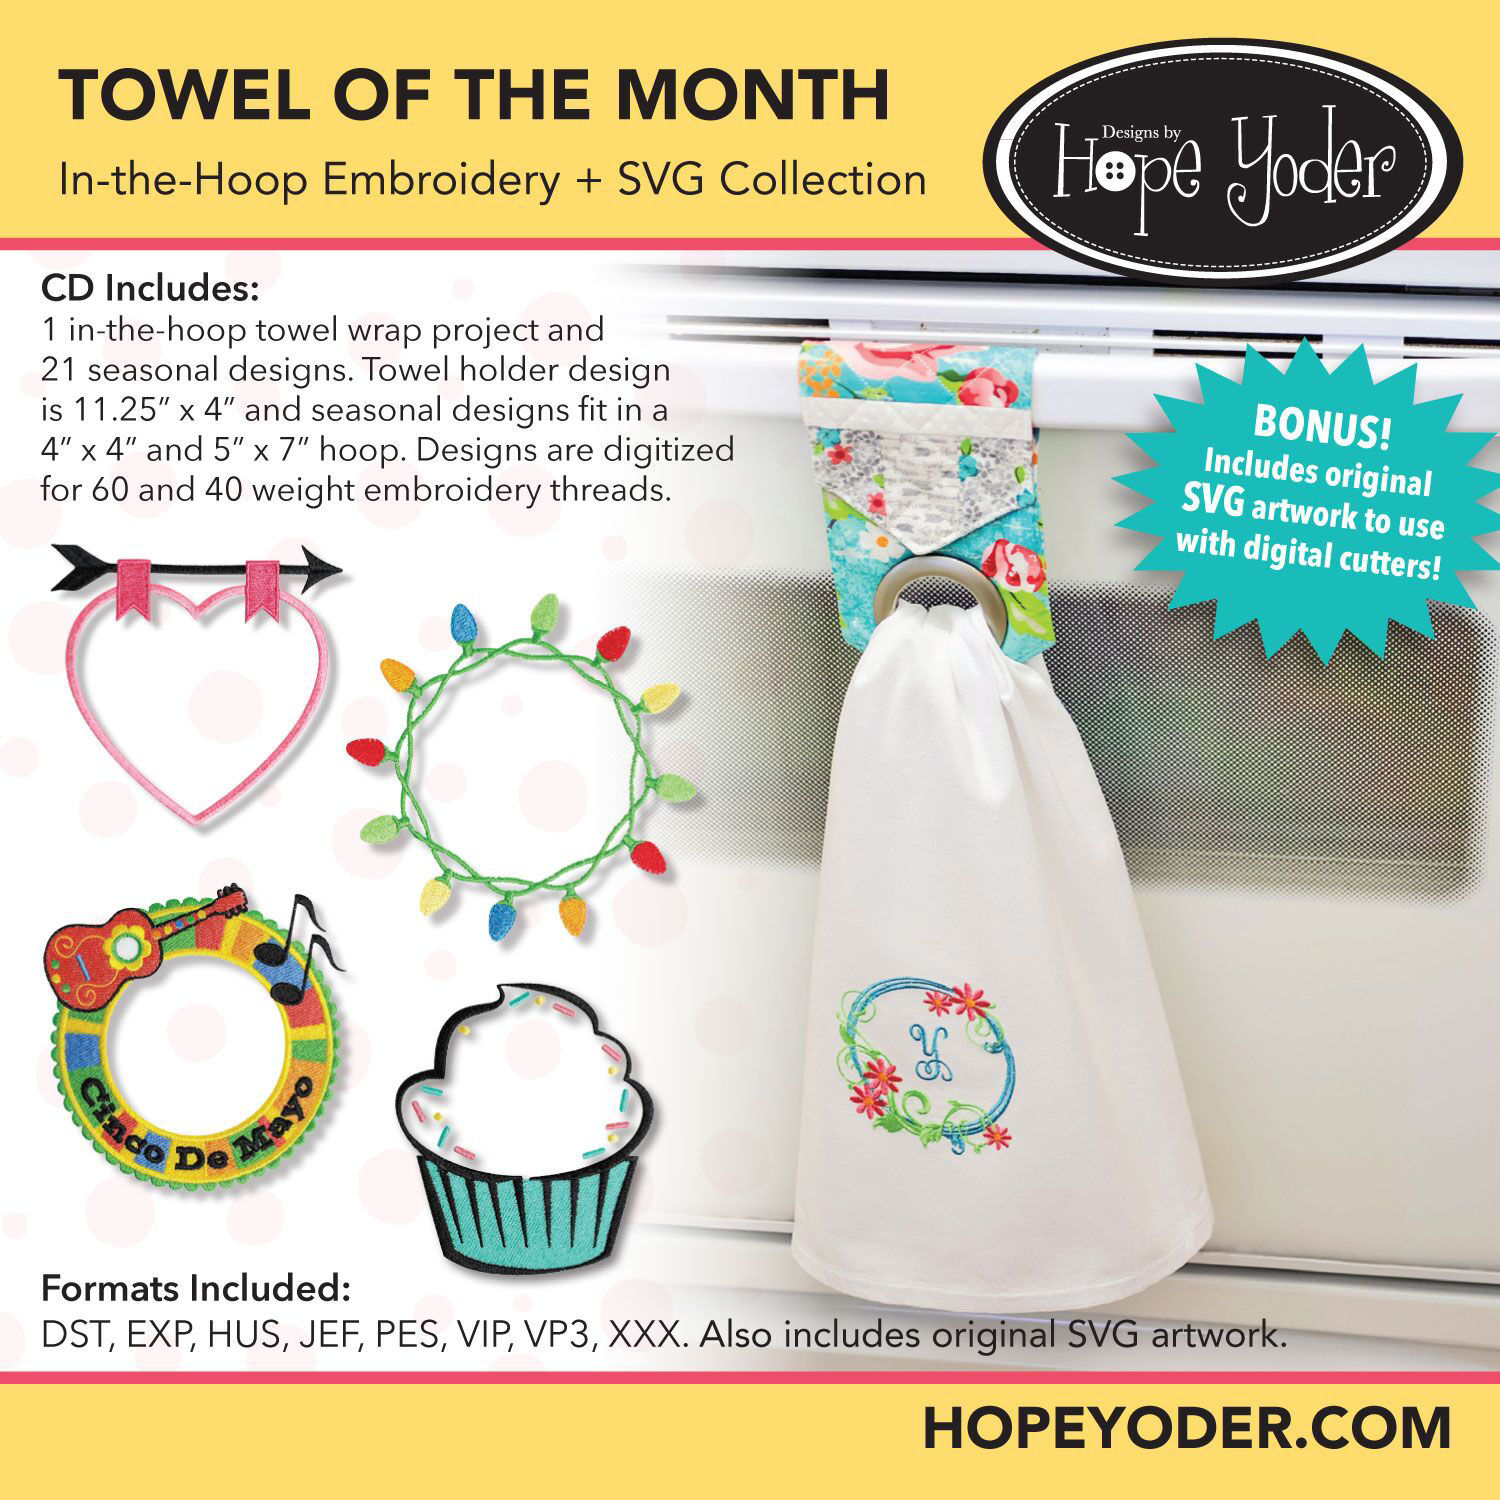 Towel of the Month CD